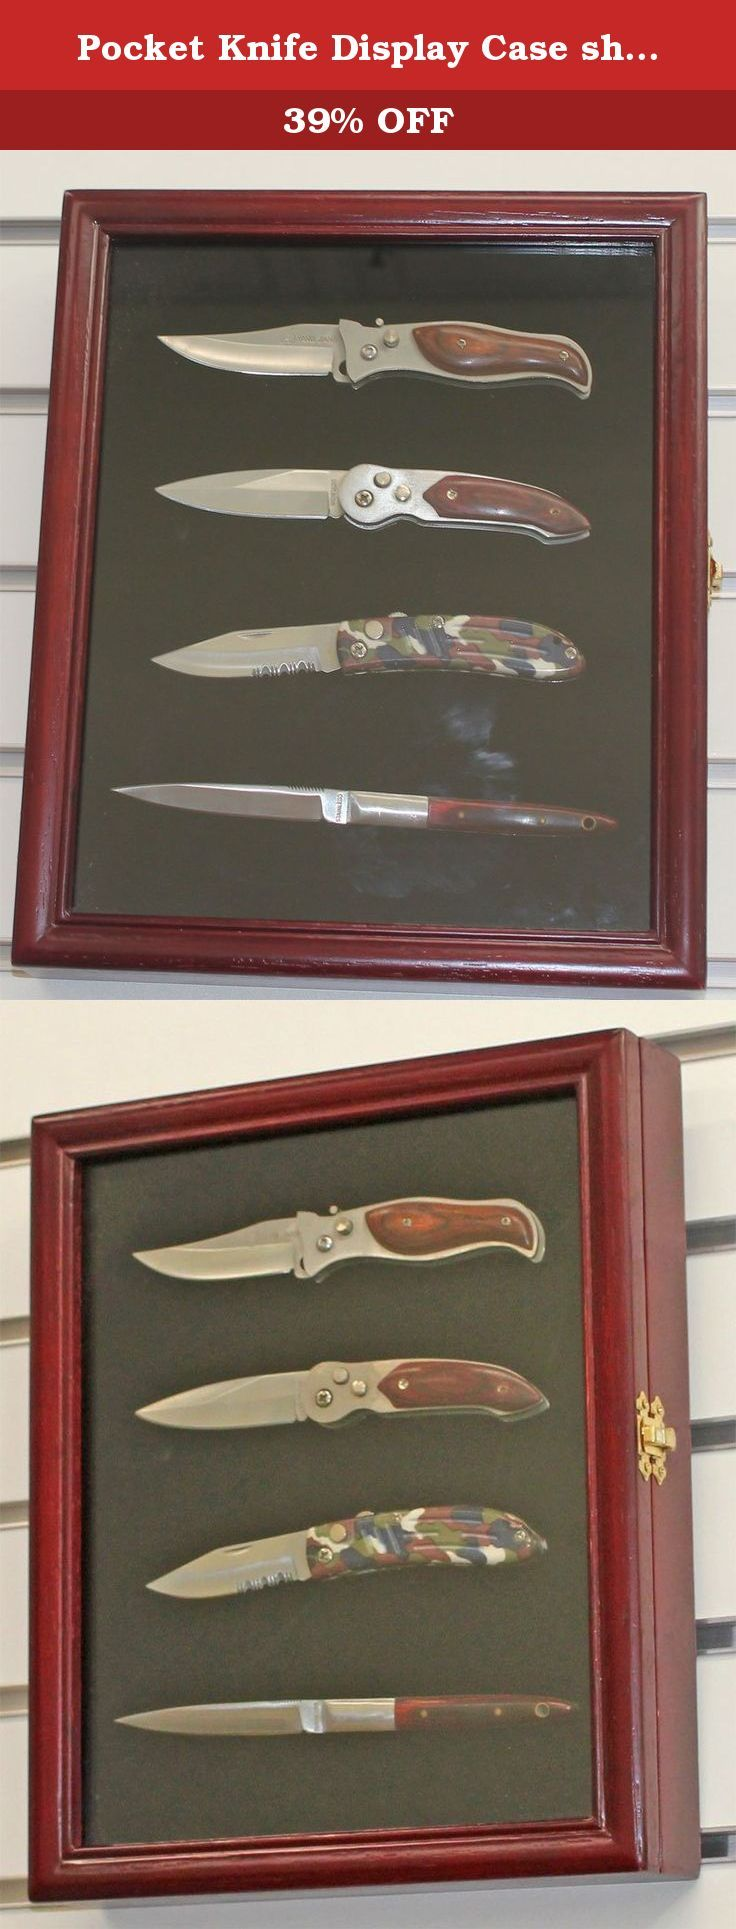 Pocket Knife Display Case Shadow Box With Glass Door Cherry Finish Kc02 Ch A Great Way T Pocket Knife Display Case Pocket Knife Display Knife Display Case